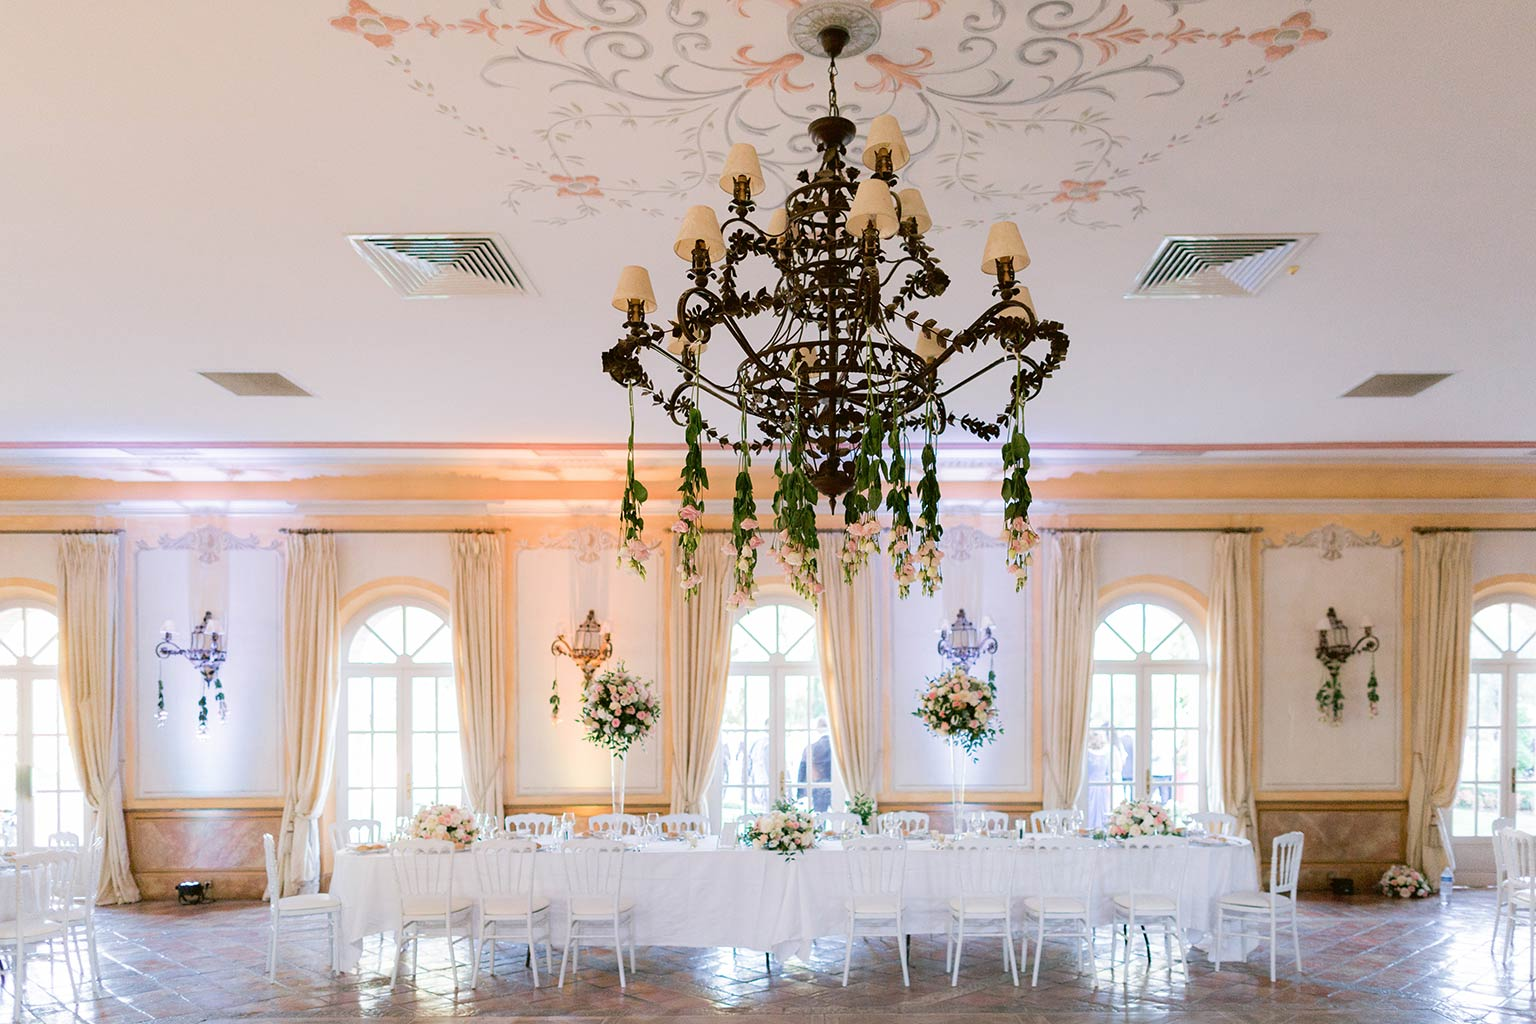 Main table Romantic and flowery decoration - Destination wedding between the French Riviera and Provence